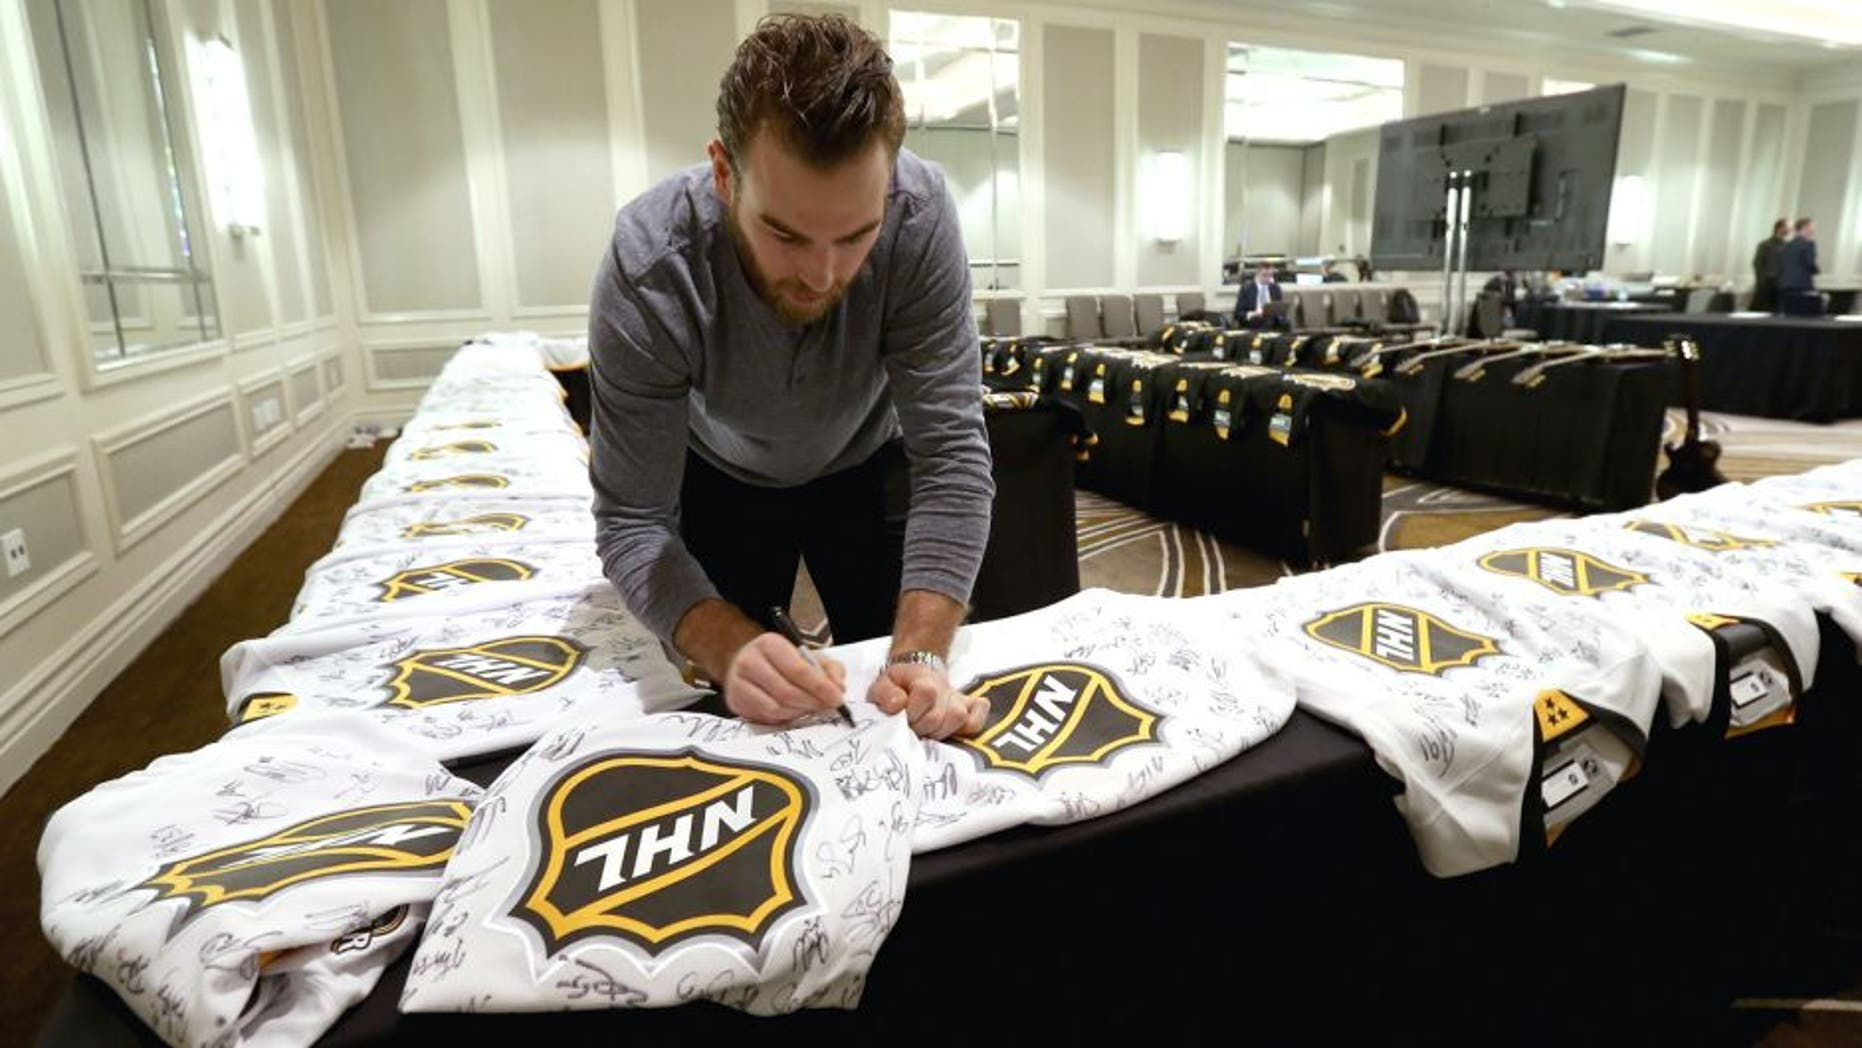 NASHVILLE, TN - JANUARY 29: Goaltender Braden Holtby #70 of the Washington Capitals signs jerseys during the Eastern Conference Skills Competition selection for the 2016 NHL All-Star Game at the Hilton Hotel on January 29, 2016 in Nashville, Tennessee. (Photo by Dave Sandford/NHLI via Getty Images)